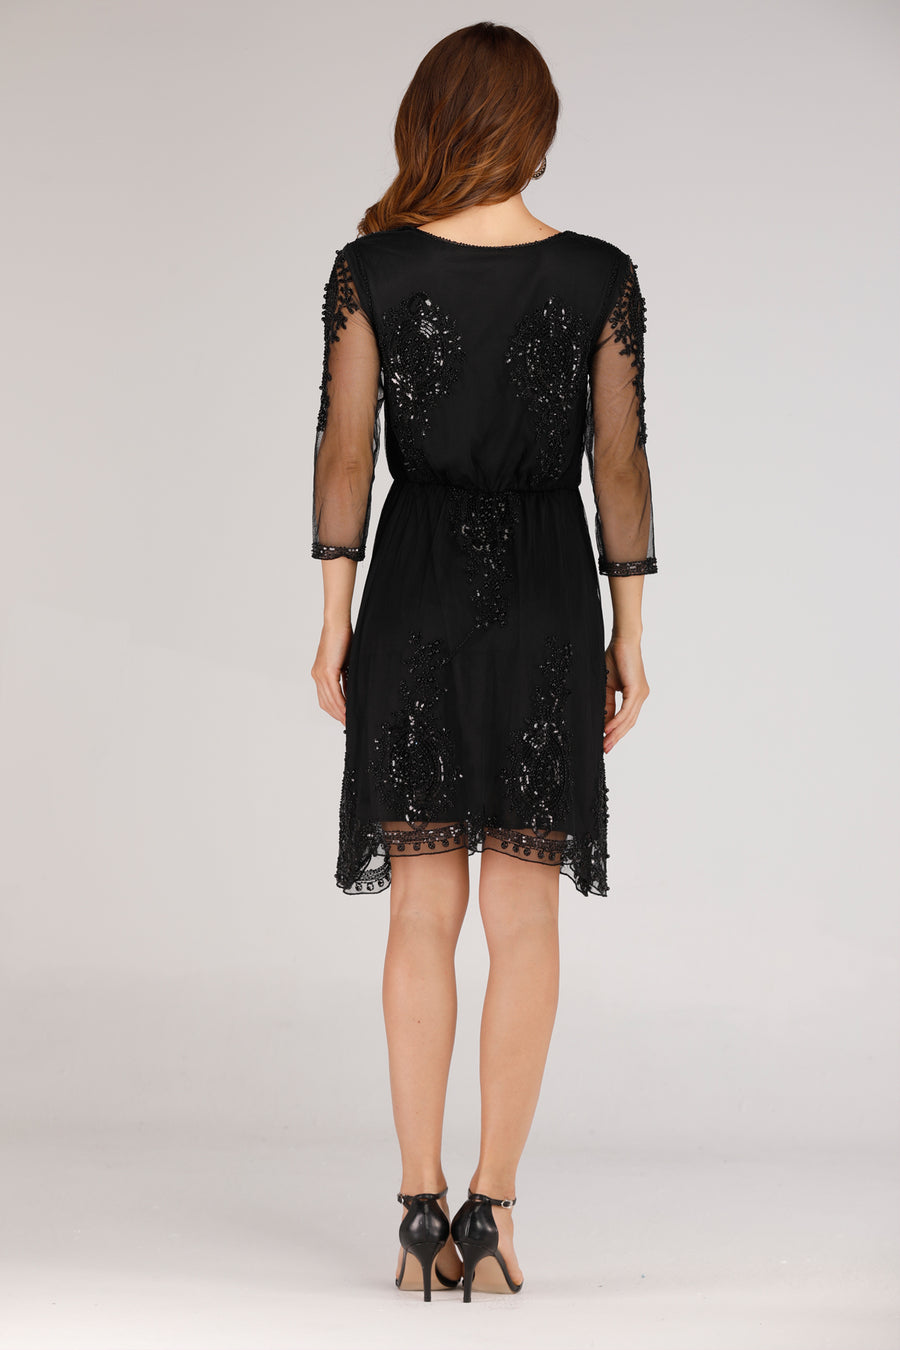 BLACK LOG DRESS WITH MESH SLEEVES AND BLACK SEQUINS